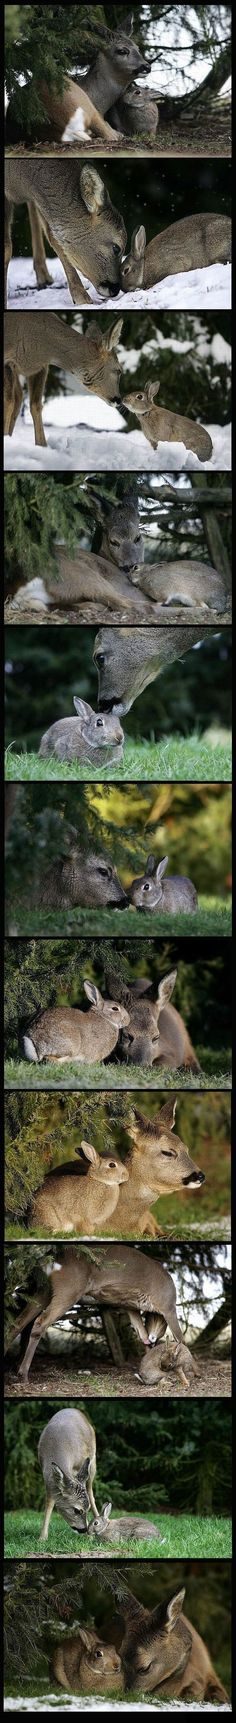 A deer and a rabbit become friends in the wild. It's Bambi and Thumper!